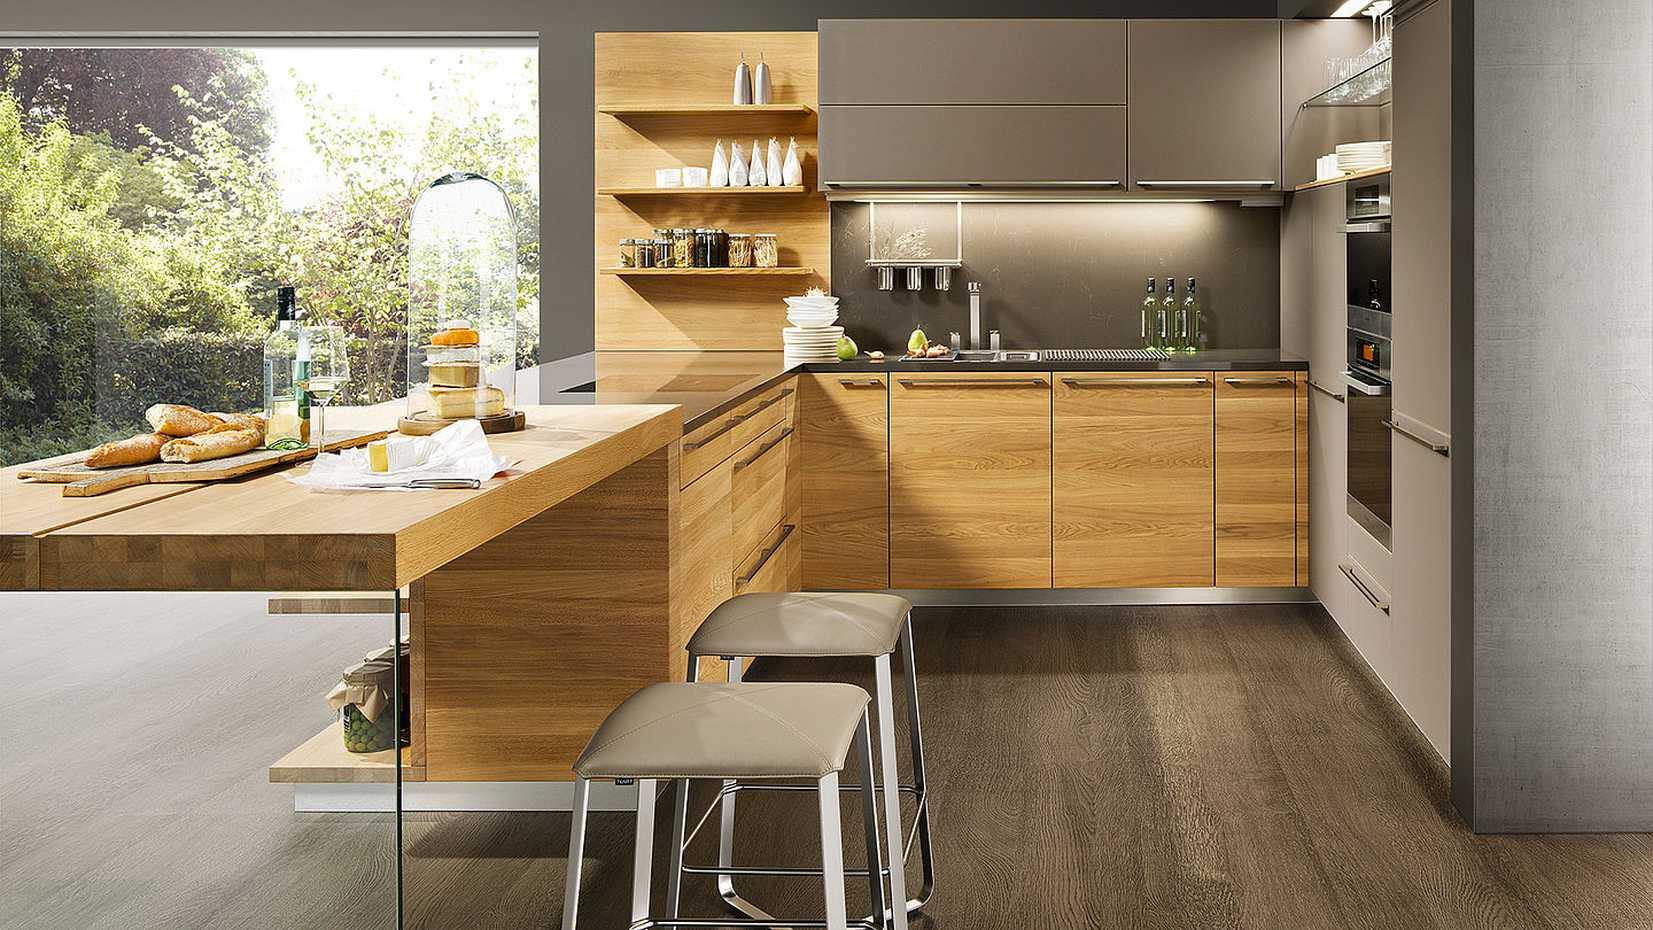 Linee Kitchen by Team 7 product image 1